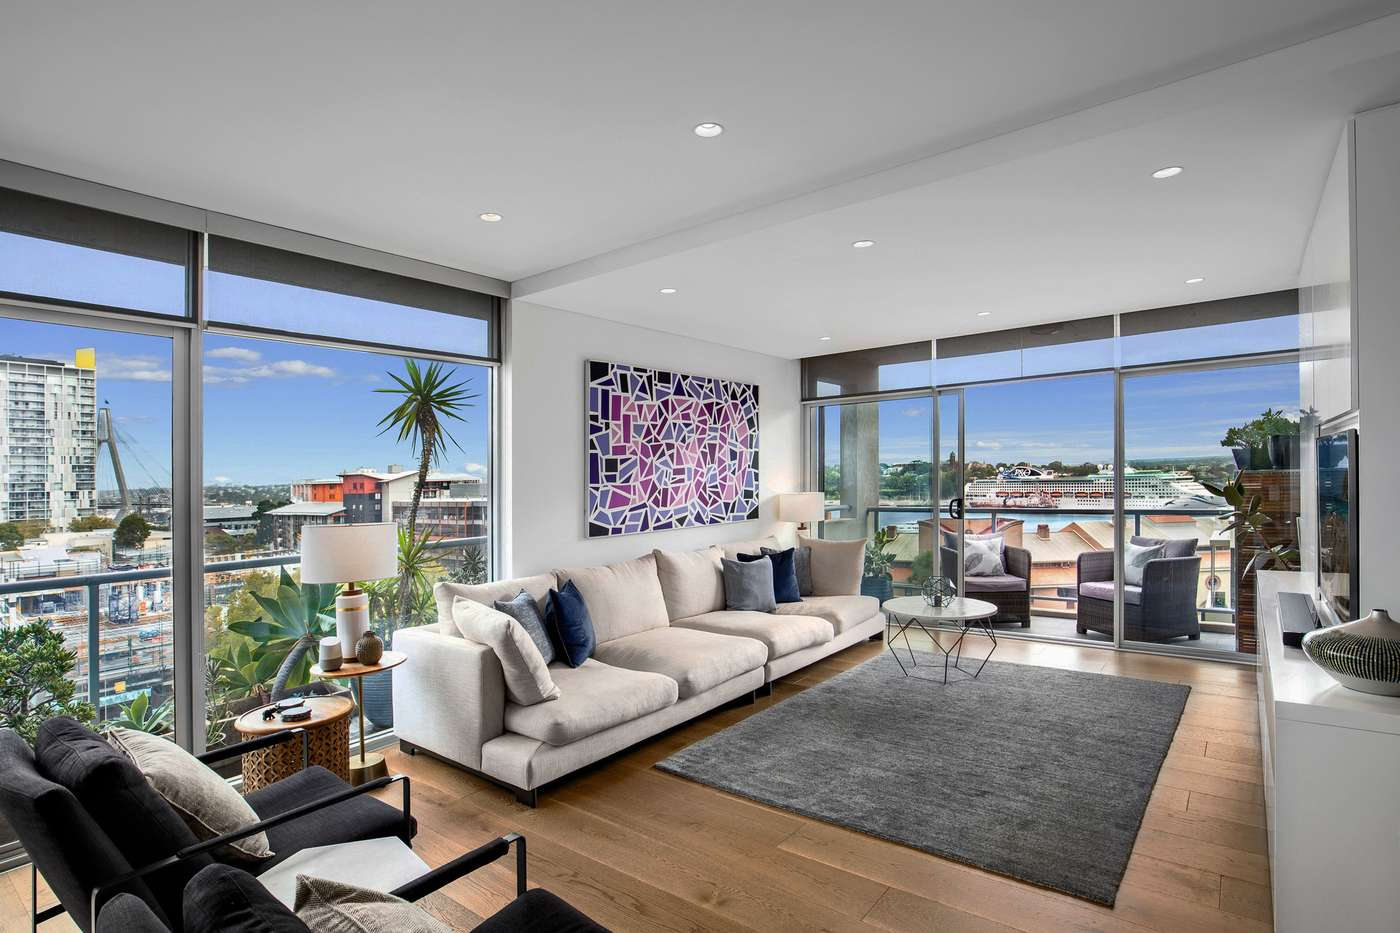 Main view of Homely apartment listing, 701/135 Point Street, Pyrmont, NSW 2009